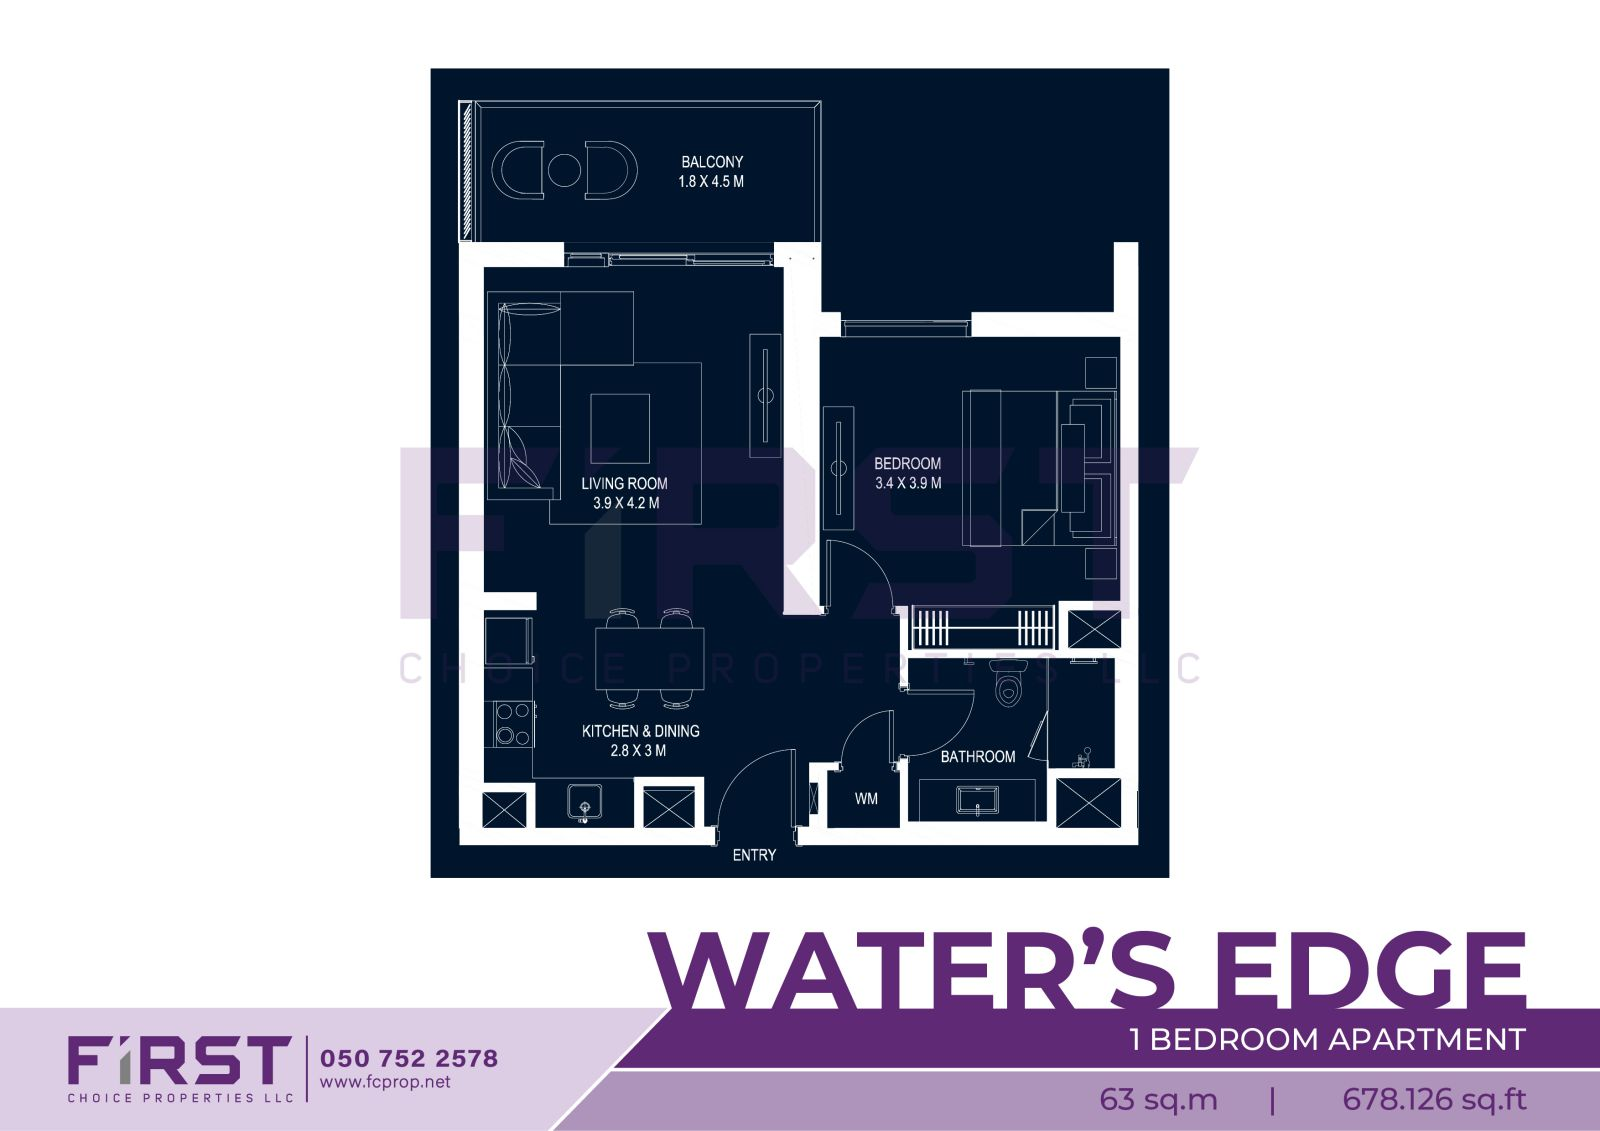 Floor Plan of 1 Bedroom Apartment in Water's Edge Yas Island Abu Dhabi UAE 63 sq.m 678.126 sq.ft.jpg